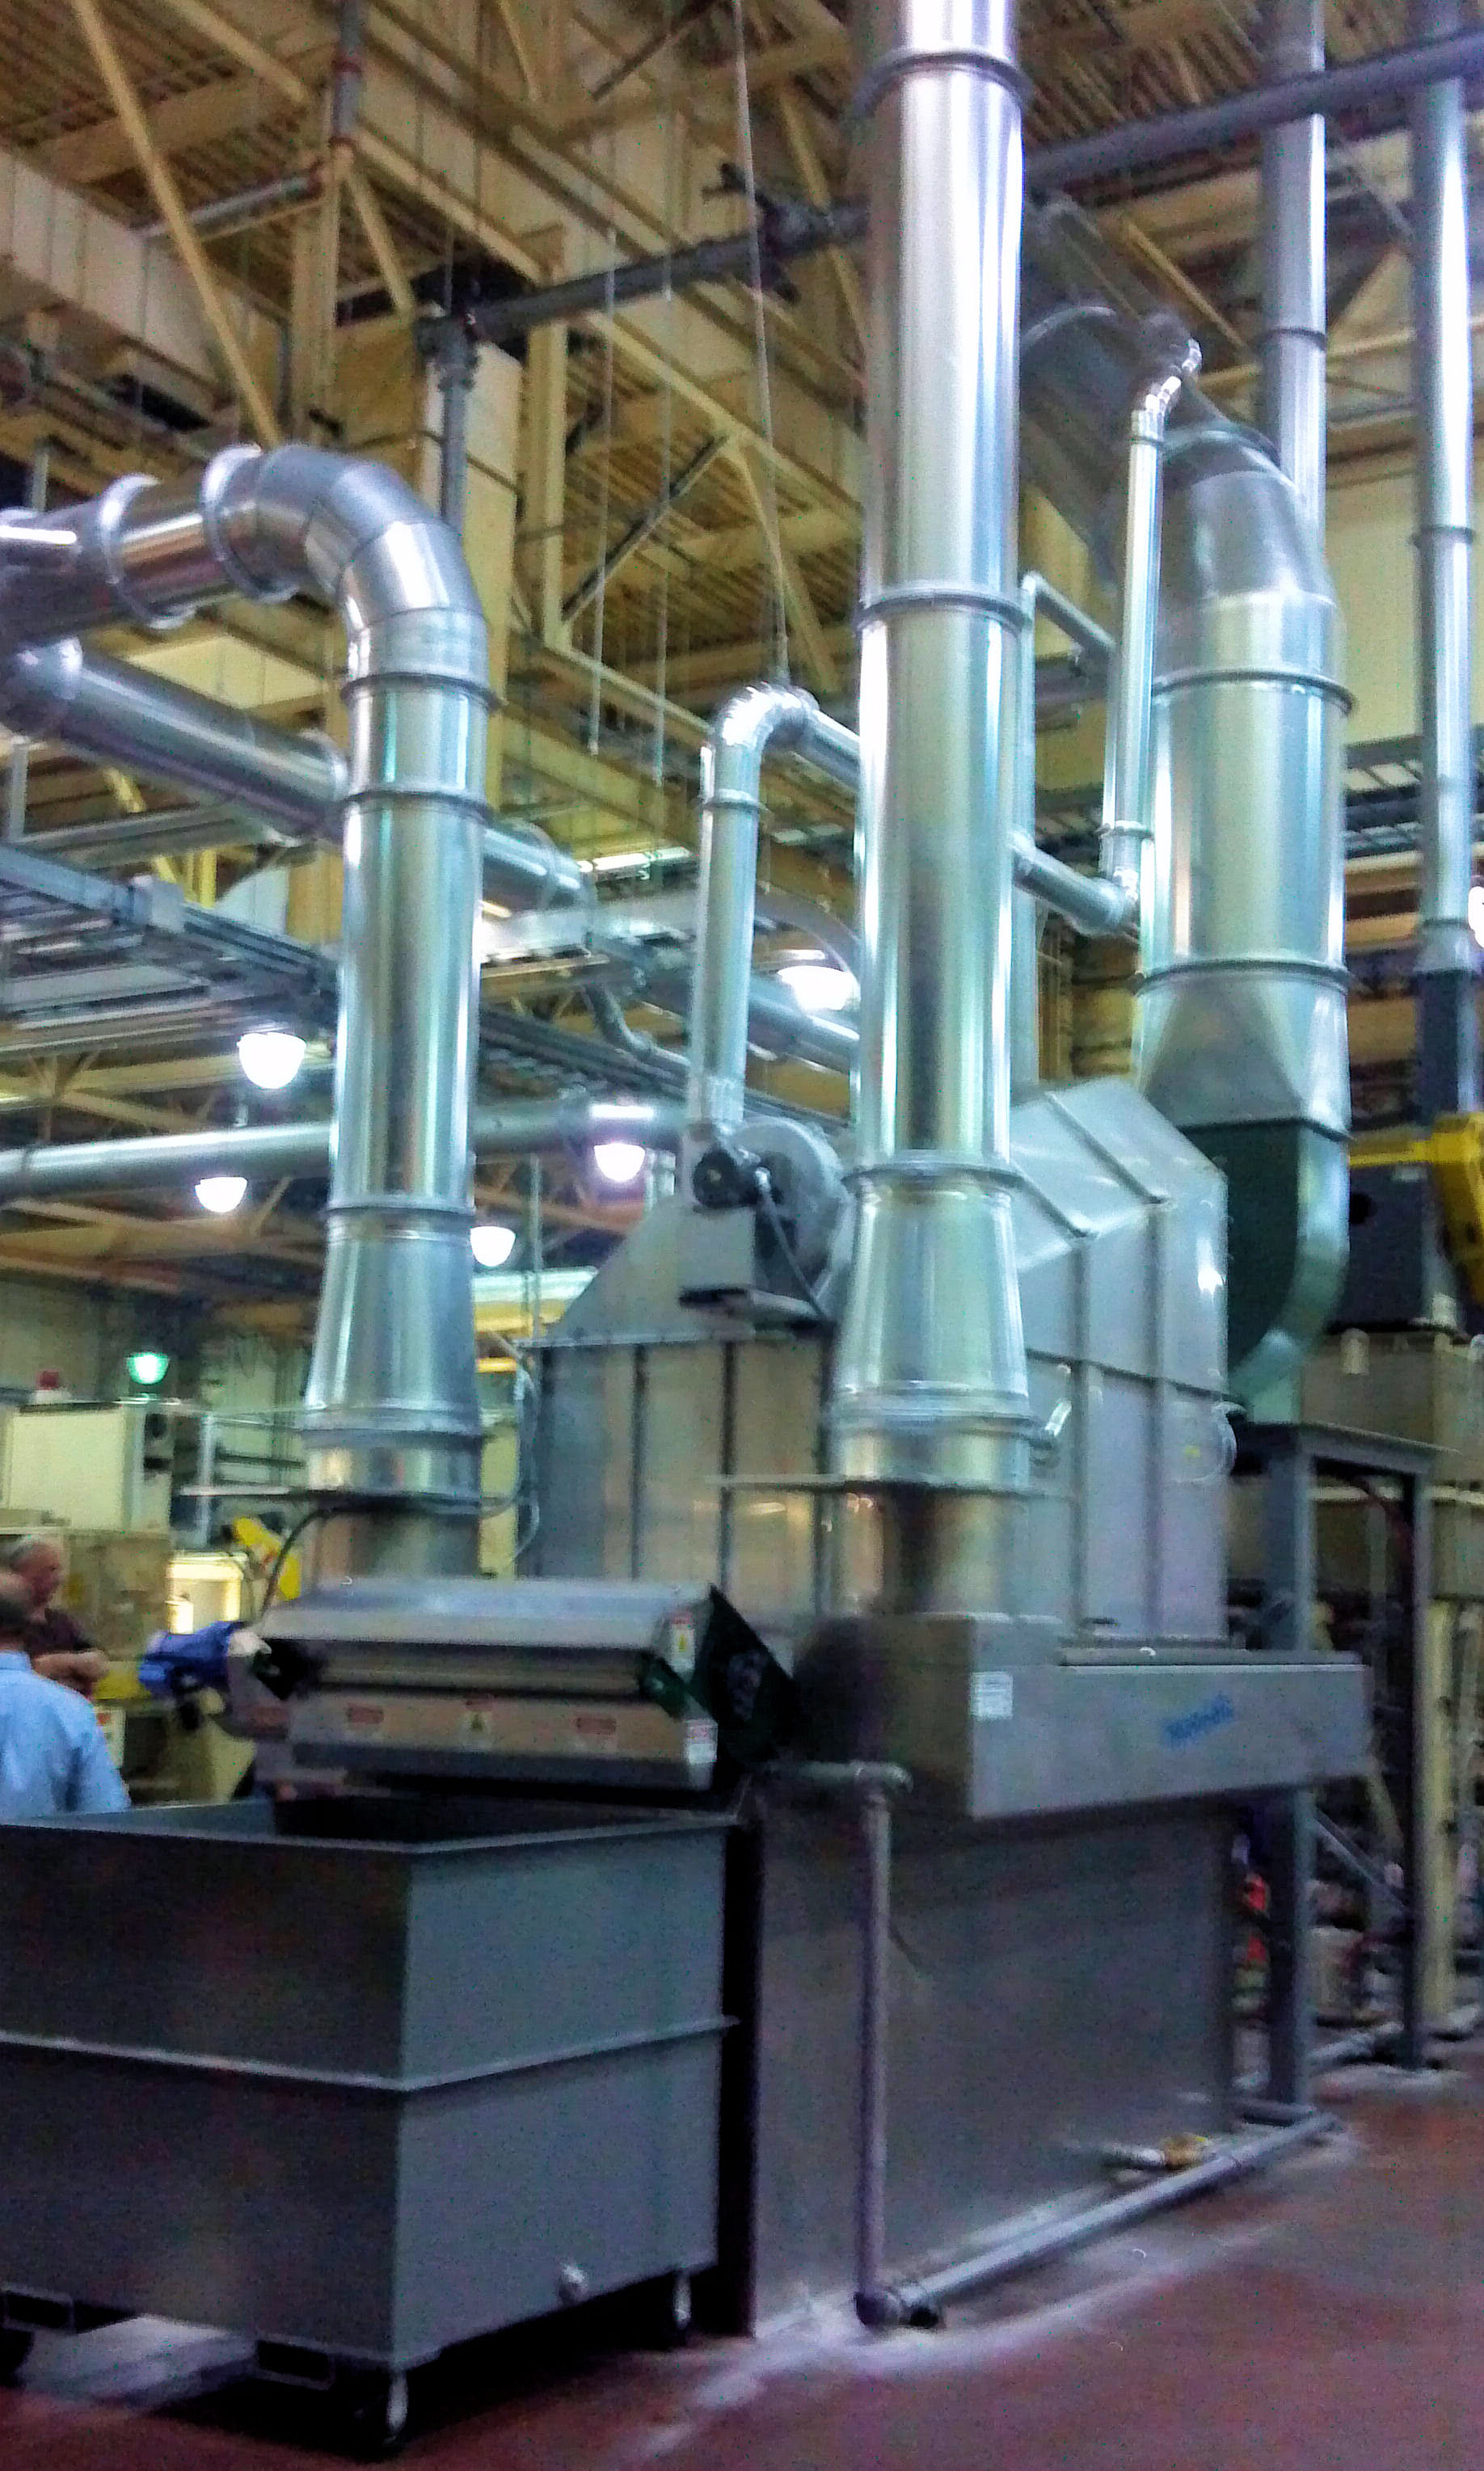 Industrial Filtration Units : Industrial air filtration systems replaceair replace